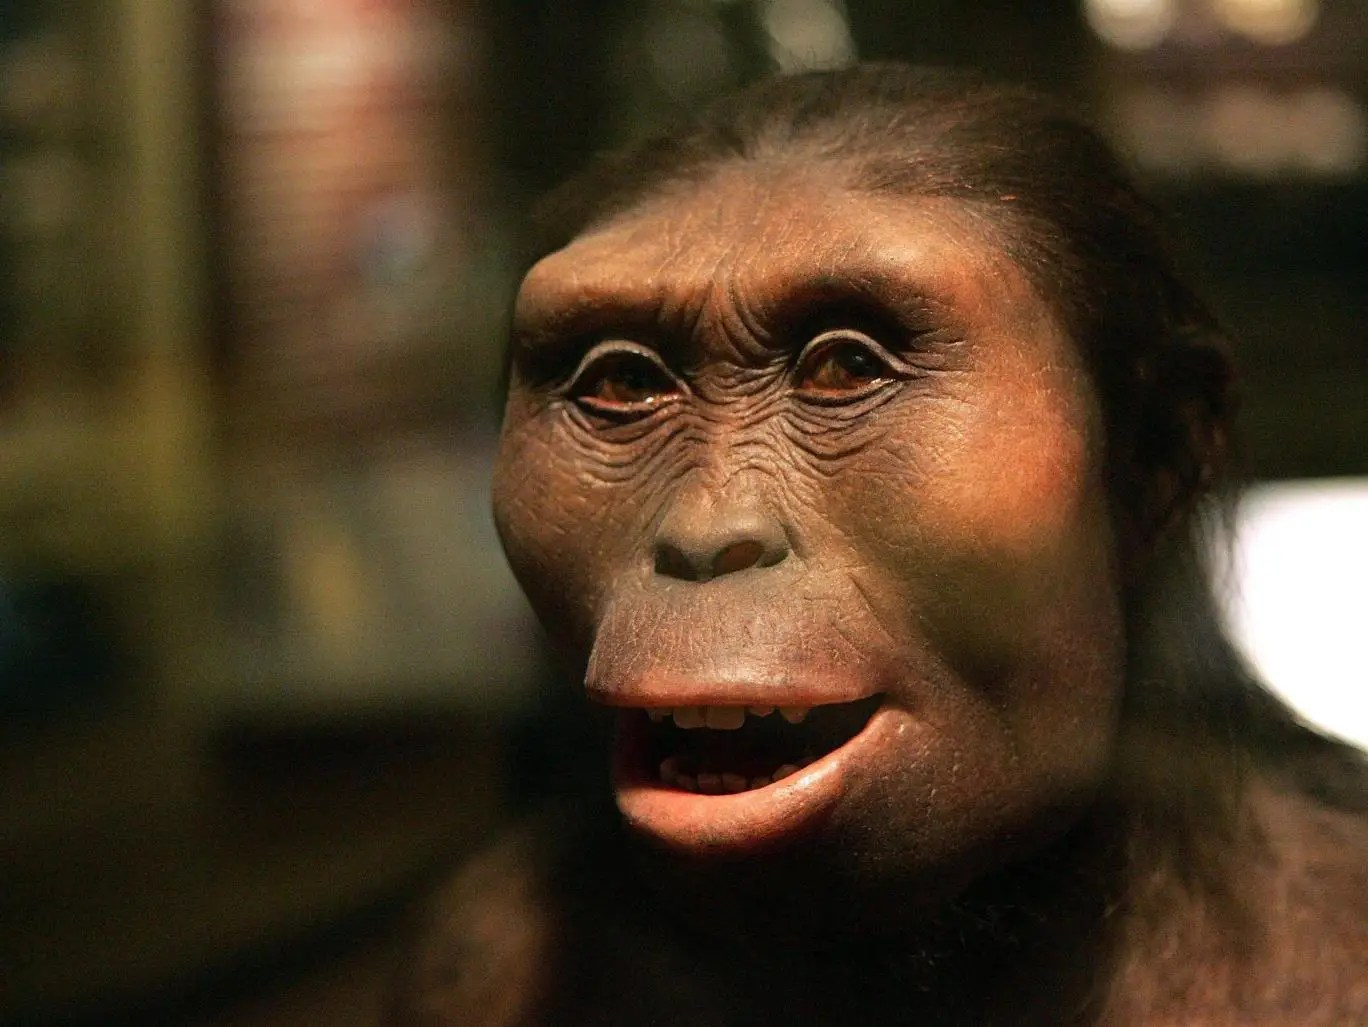 A model of Lucy the Australopithecus at the Field Museum in Chicago